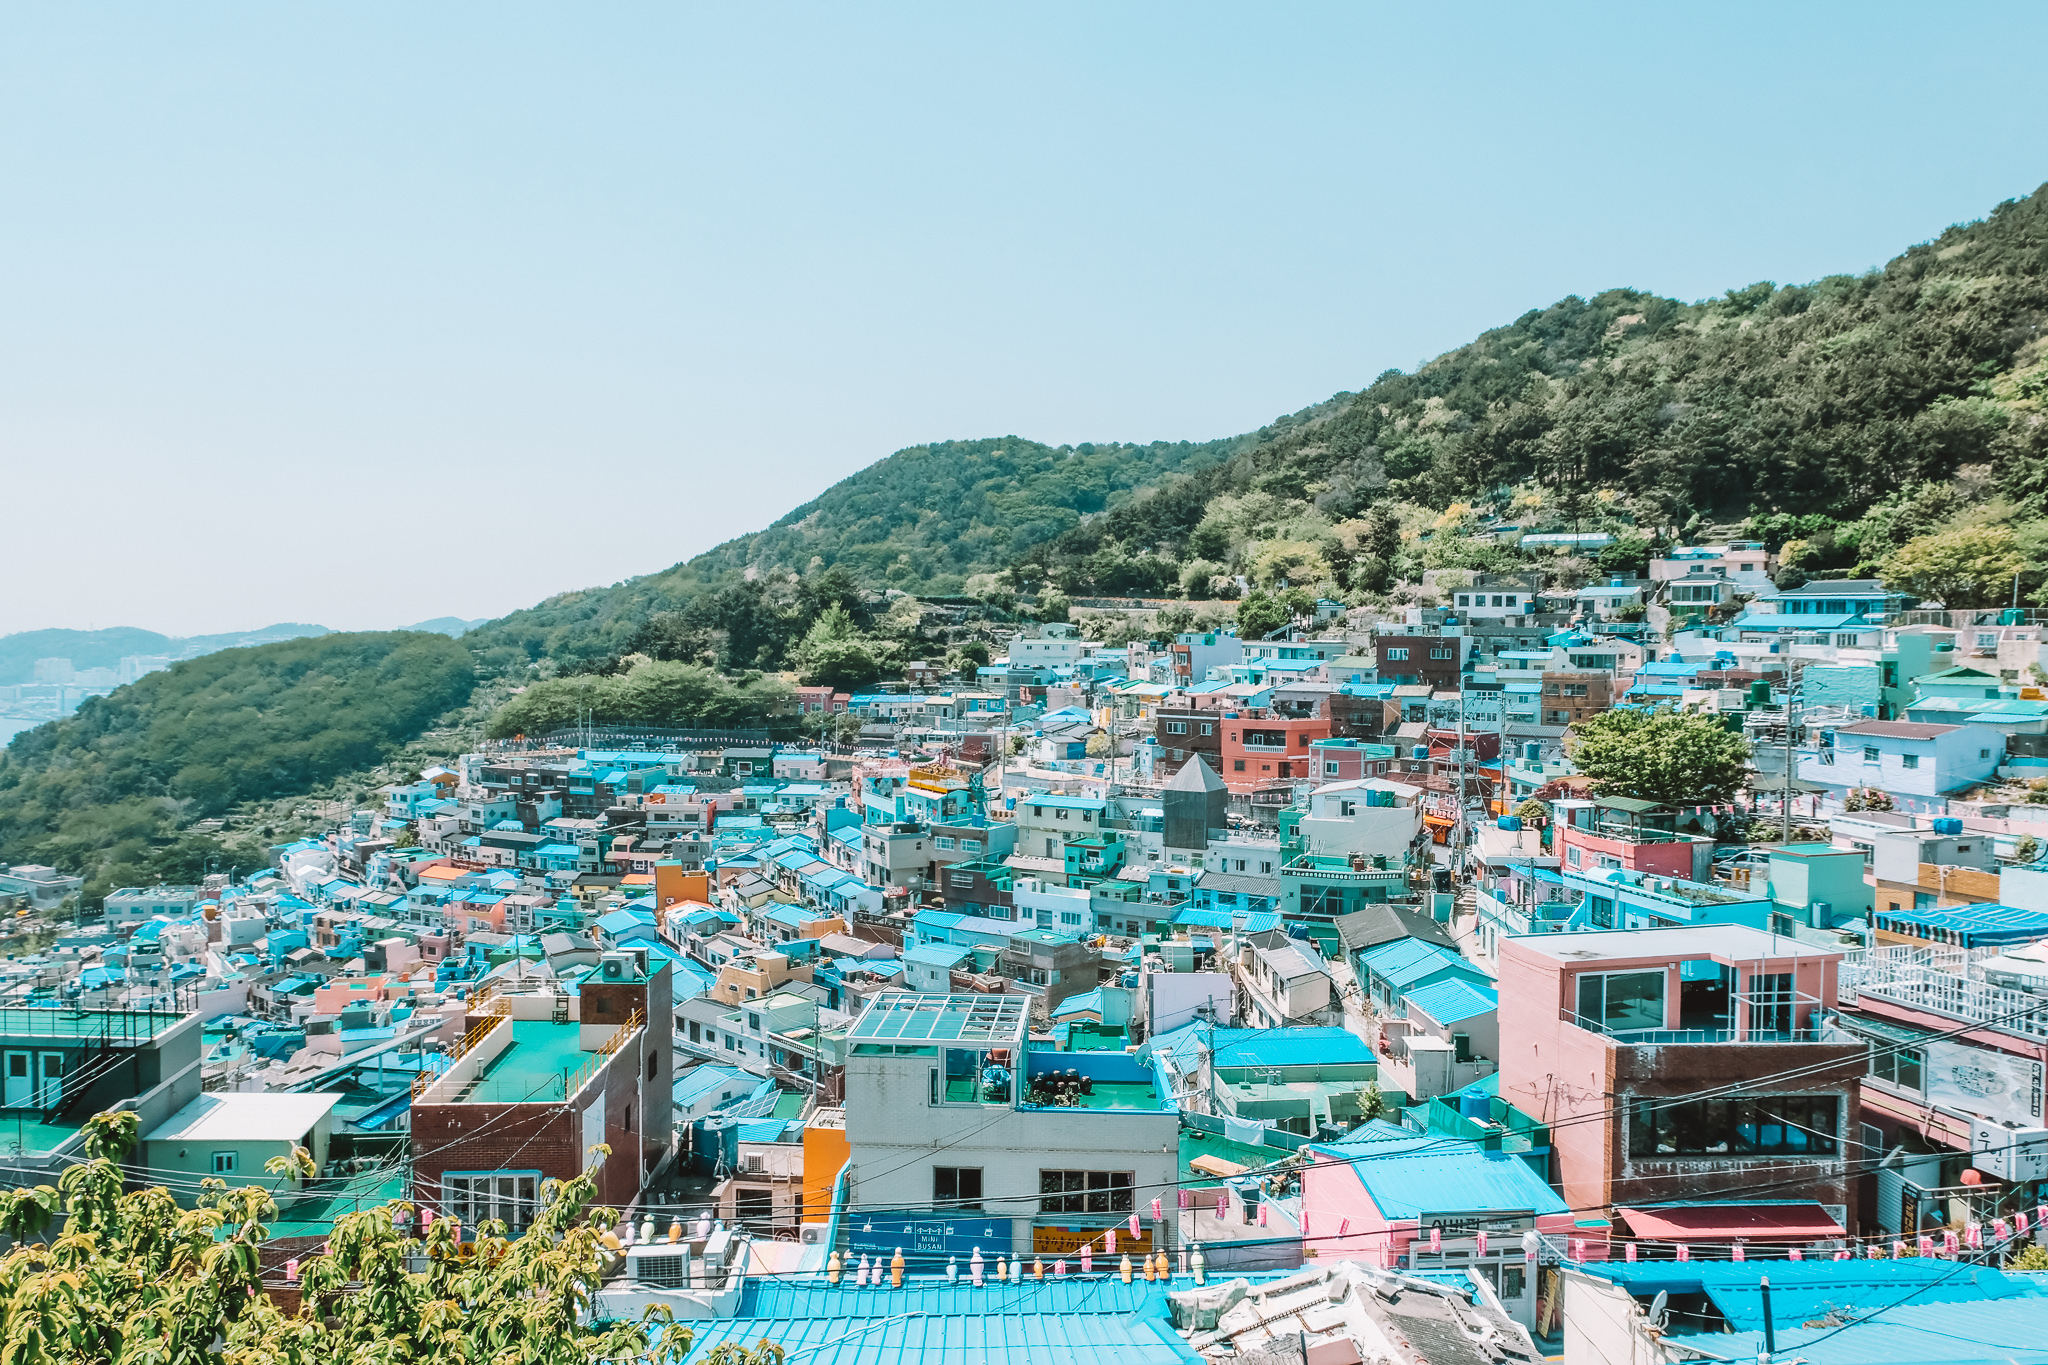 Your travel guide to Busan, South Korea: where to stay and ... on joseon korea map, gwangju korea map, korea's tumen river map, hallasan korea map, hwaseong korea map, bucheon korea map, pyeongtaek korea map, osan korea map, daegu korea map, sejong city korea map, republic of korea war map, lotte world korea map, panmunjom korea map, ulsan korea map, kyoto korea map, incheon korea map, gimcheon korea map, usfk korea map, seoul map, pusan map,